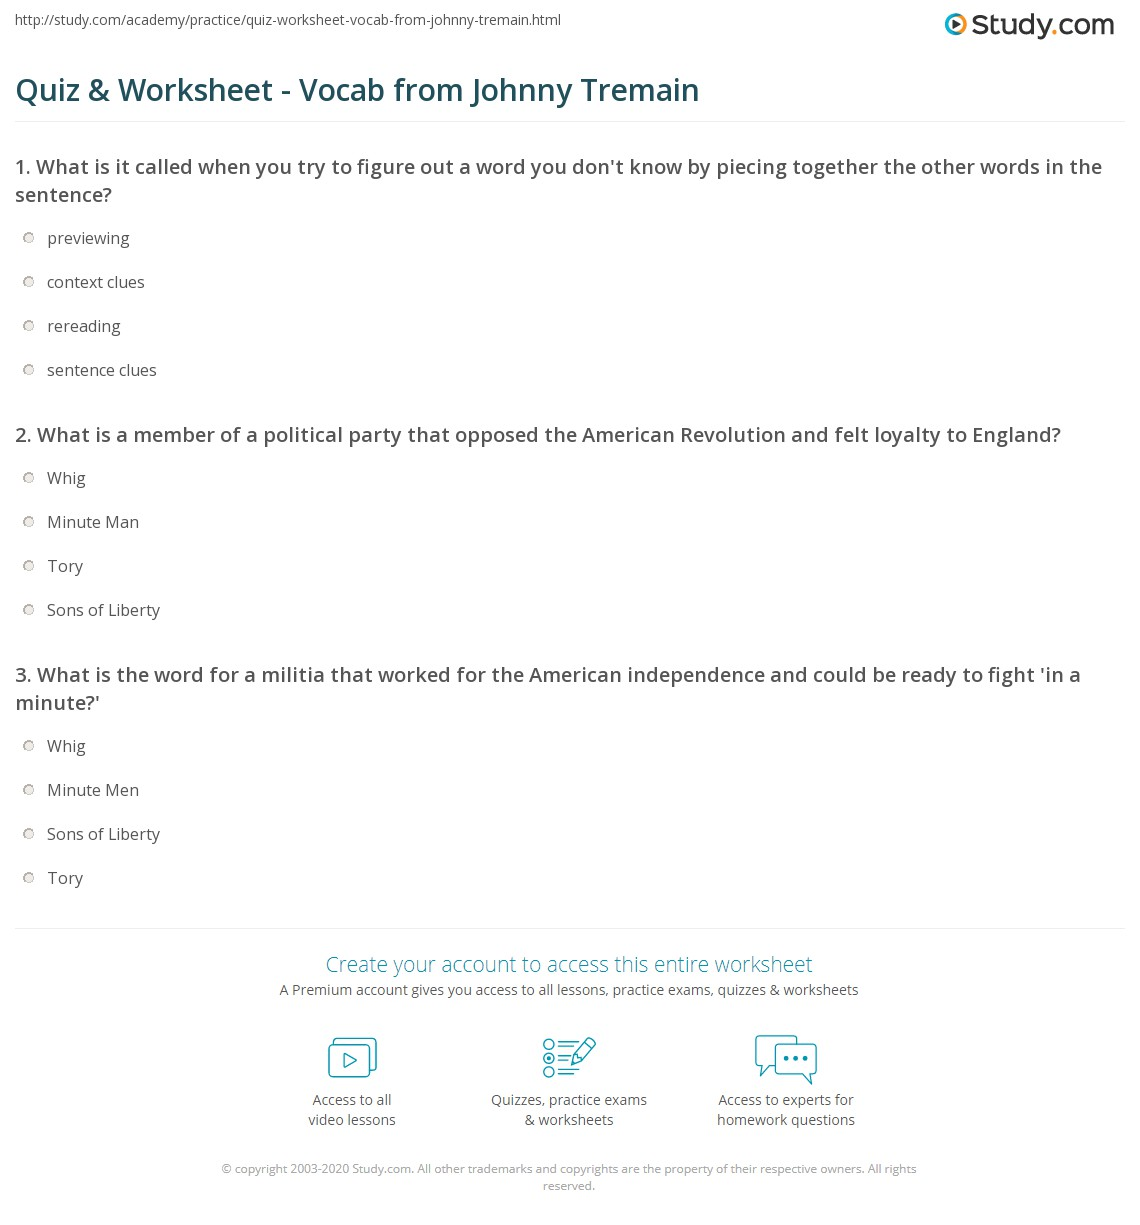 Quiz & Worksheet - Vocab from Johnny Tremain | Study.com